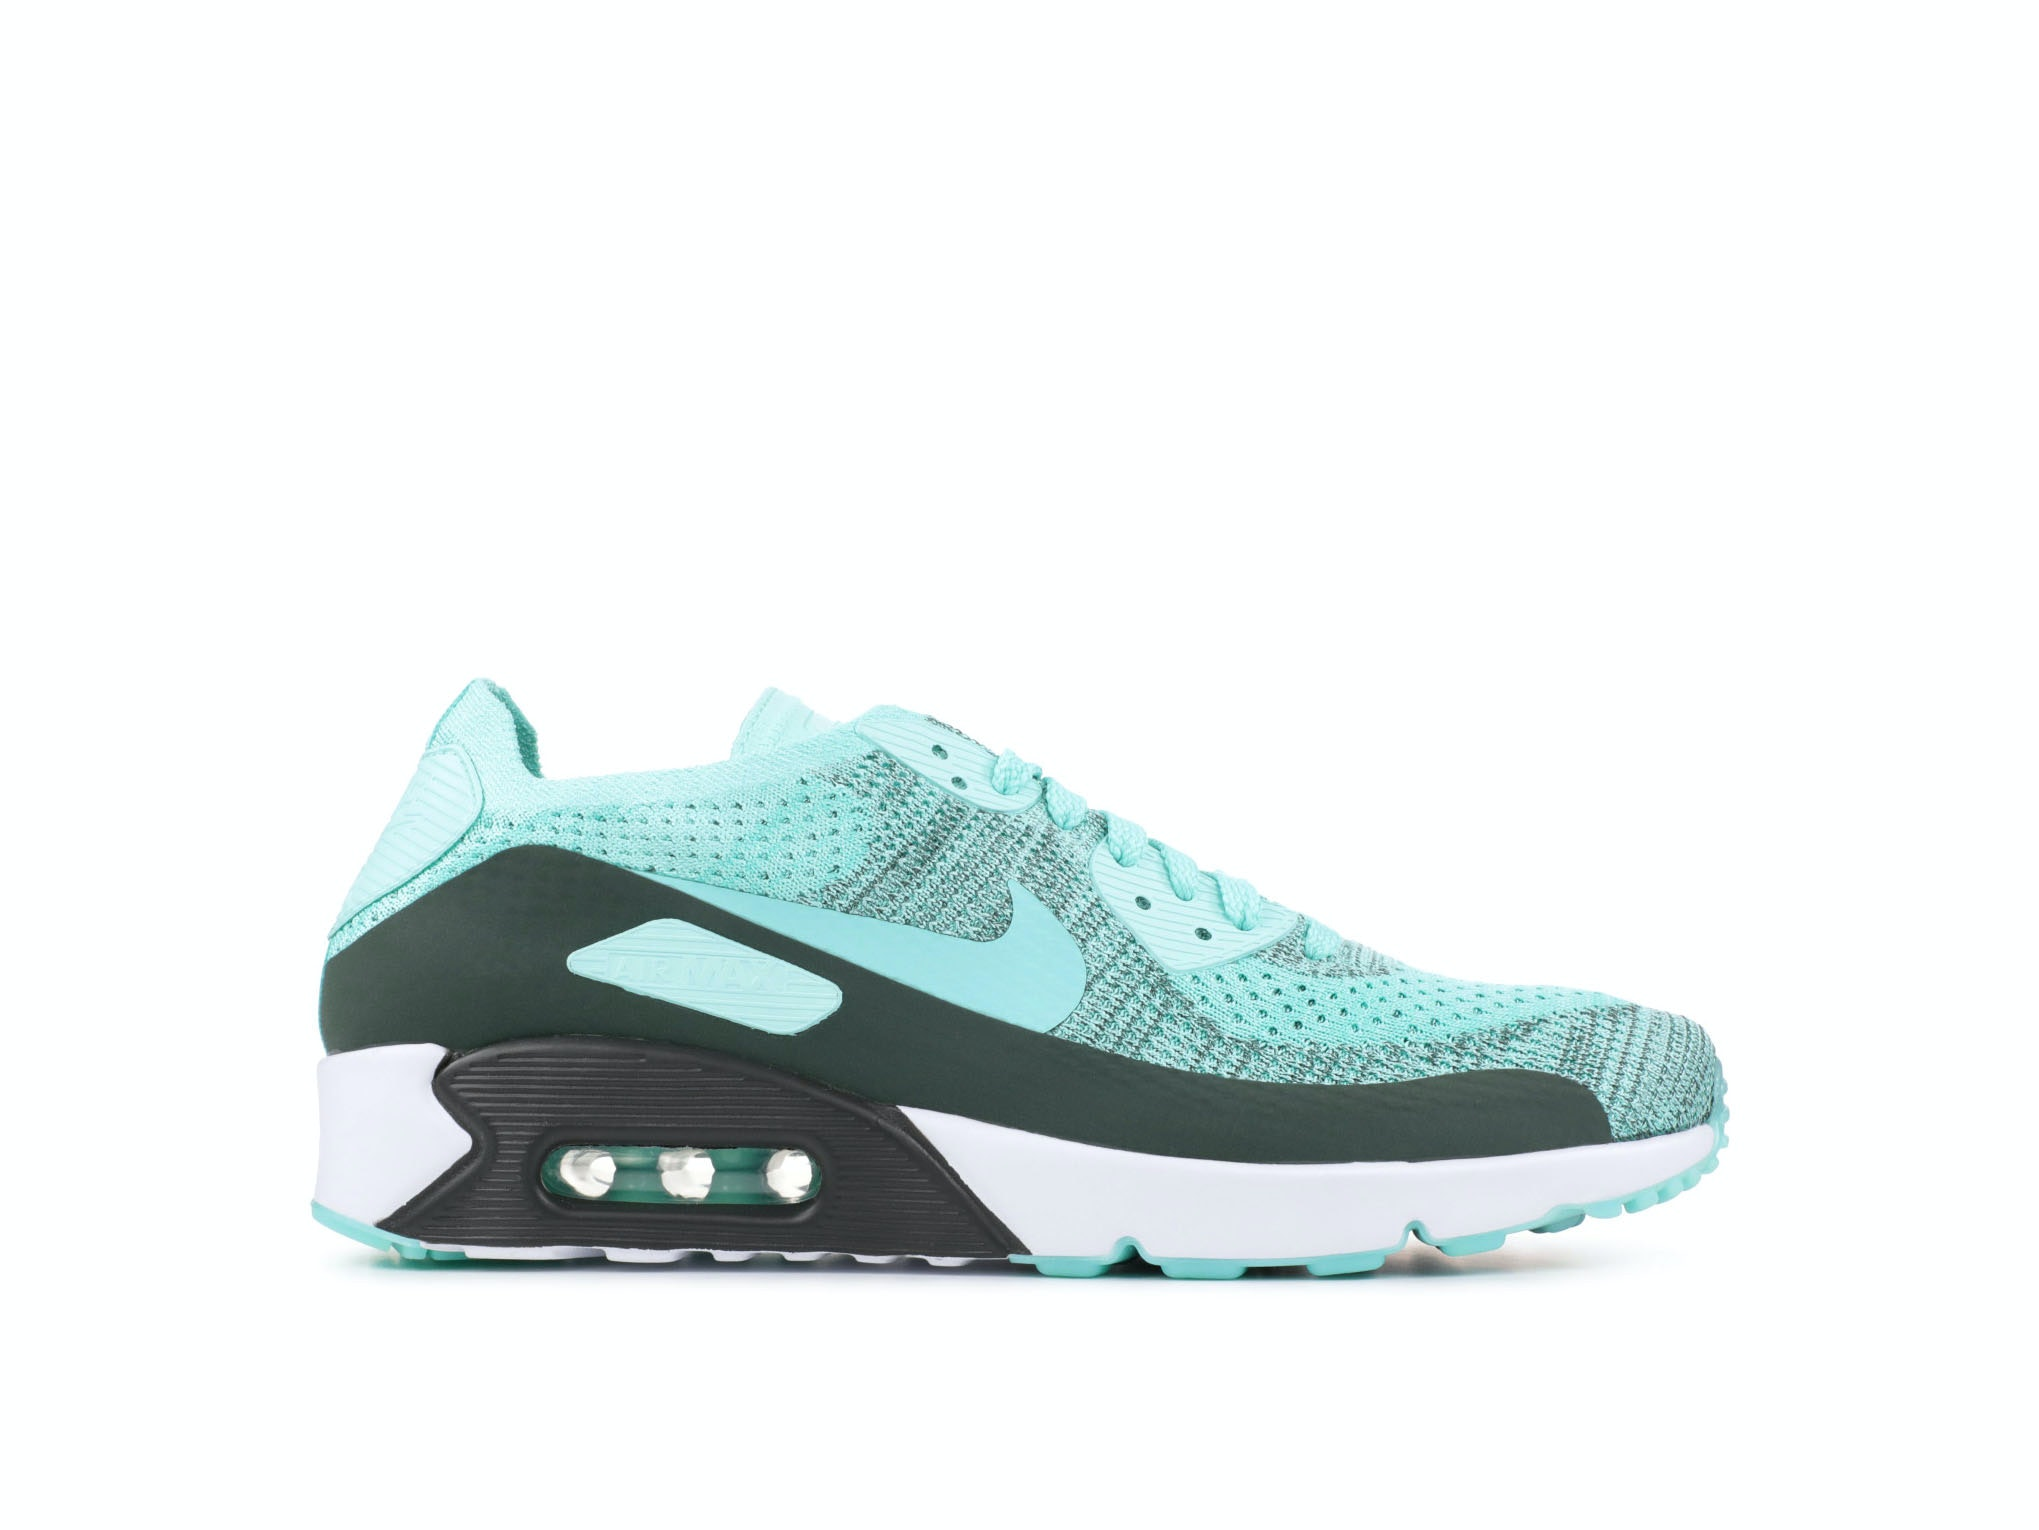 separation shoes 441a2 78481 Air Max 90 Ultra 2.0 Flyknit Hyper Turquoise